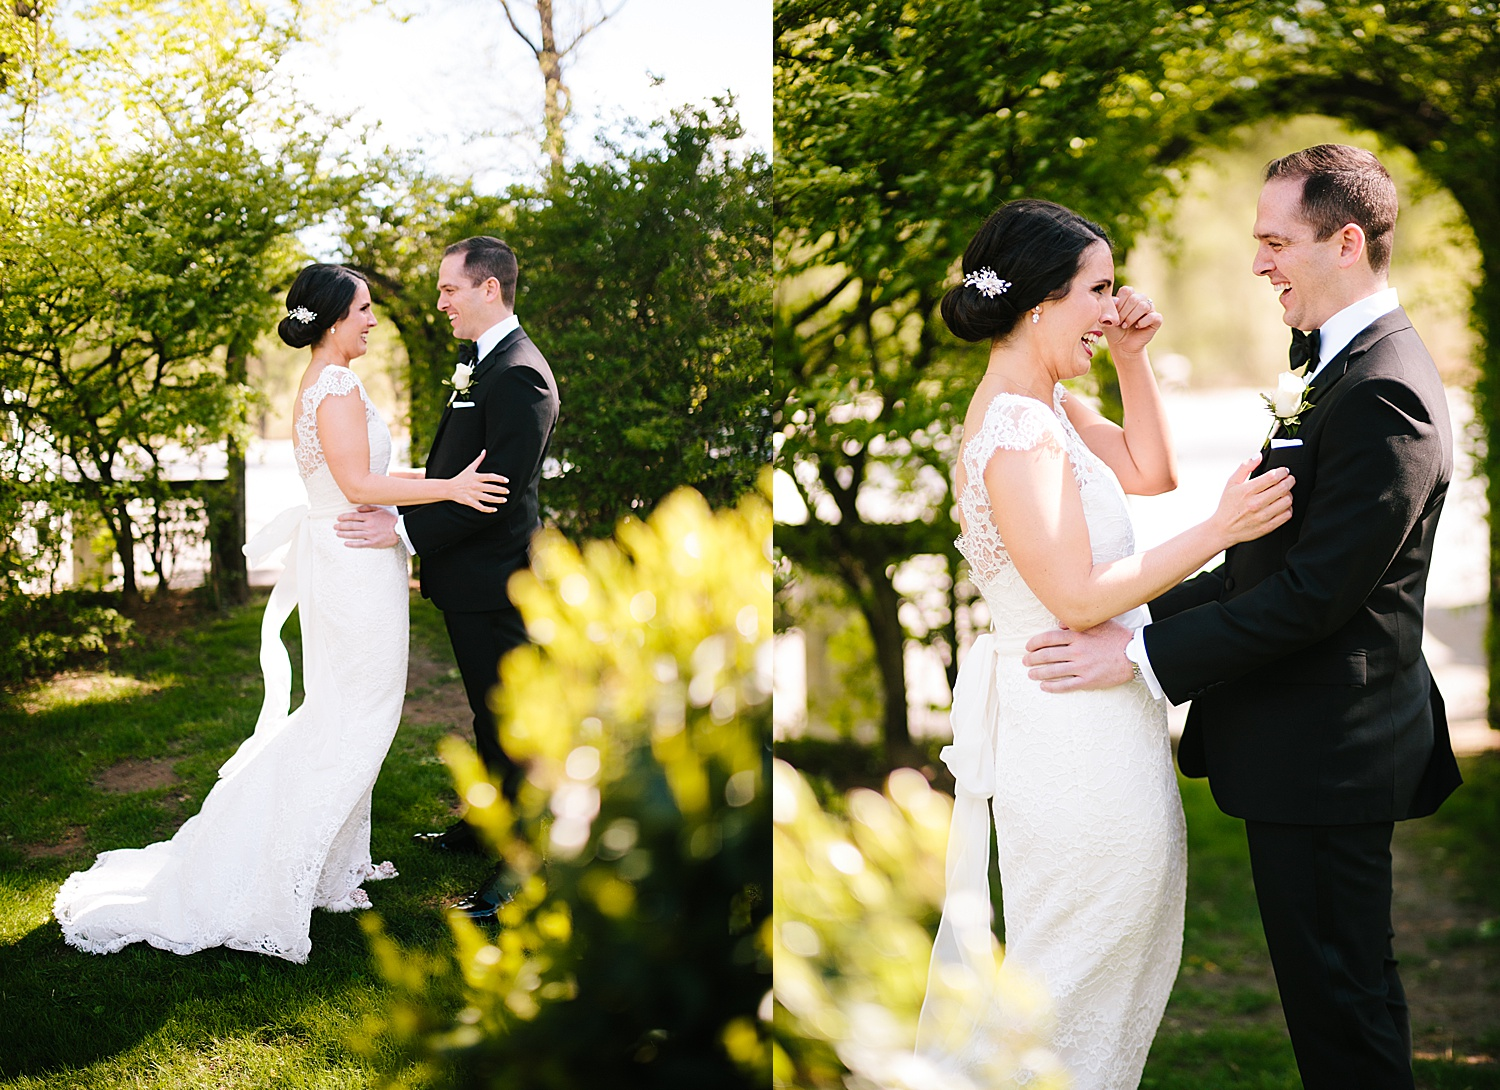 caitlingmarc_hotelduvillage_newhope_estate_spring_wedding)image039.jpg